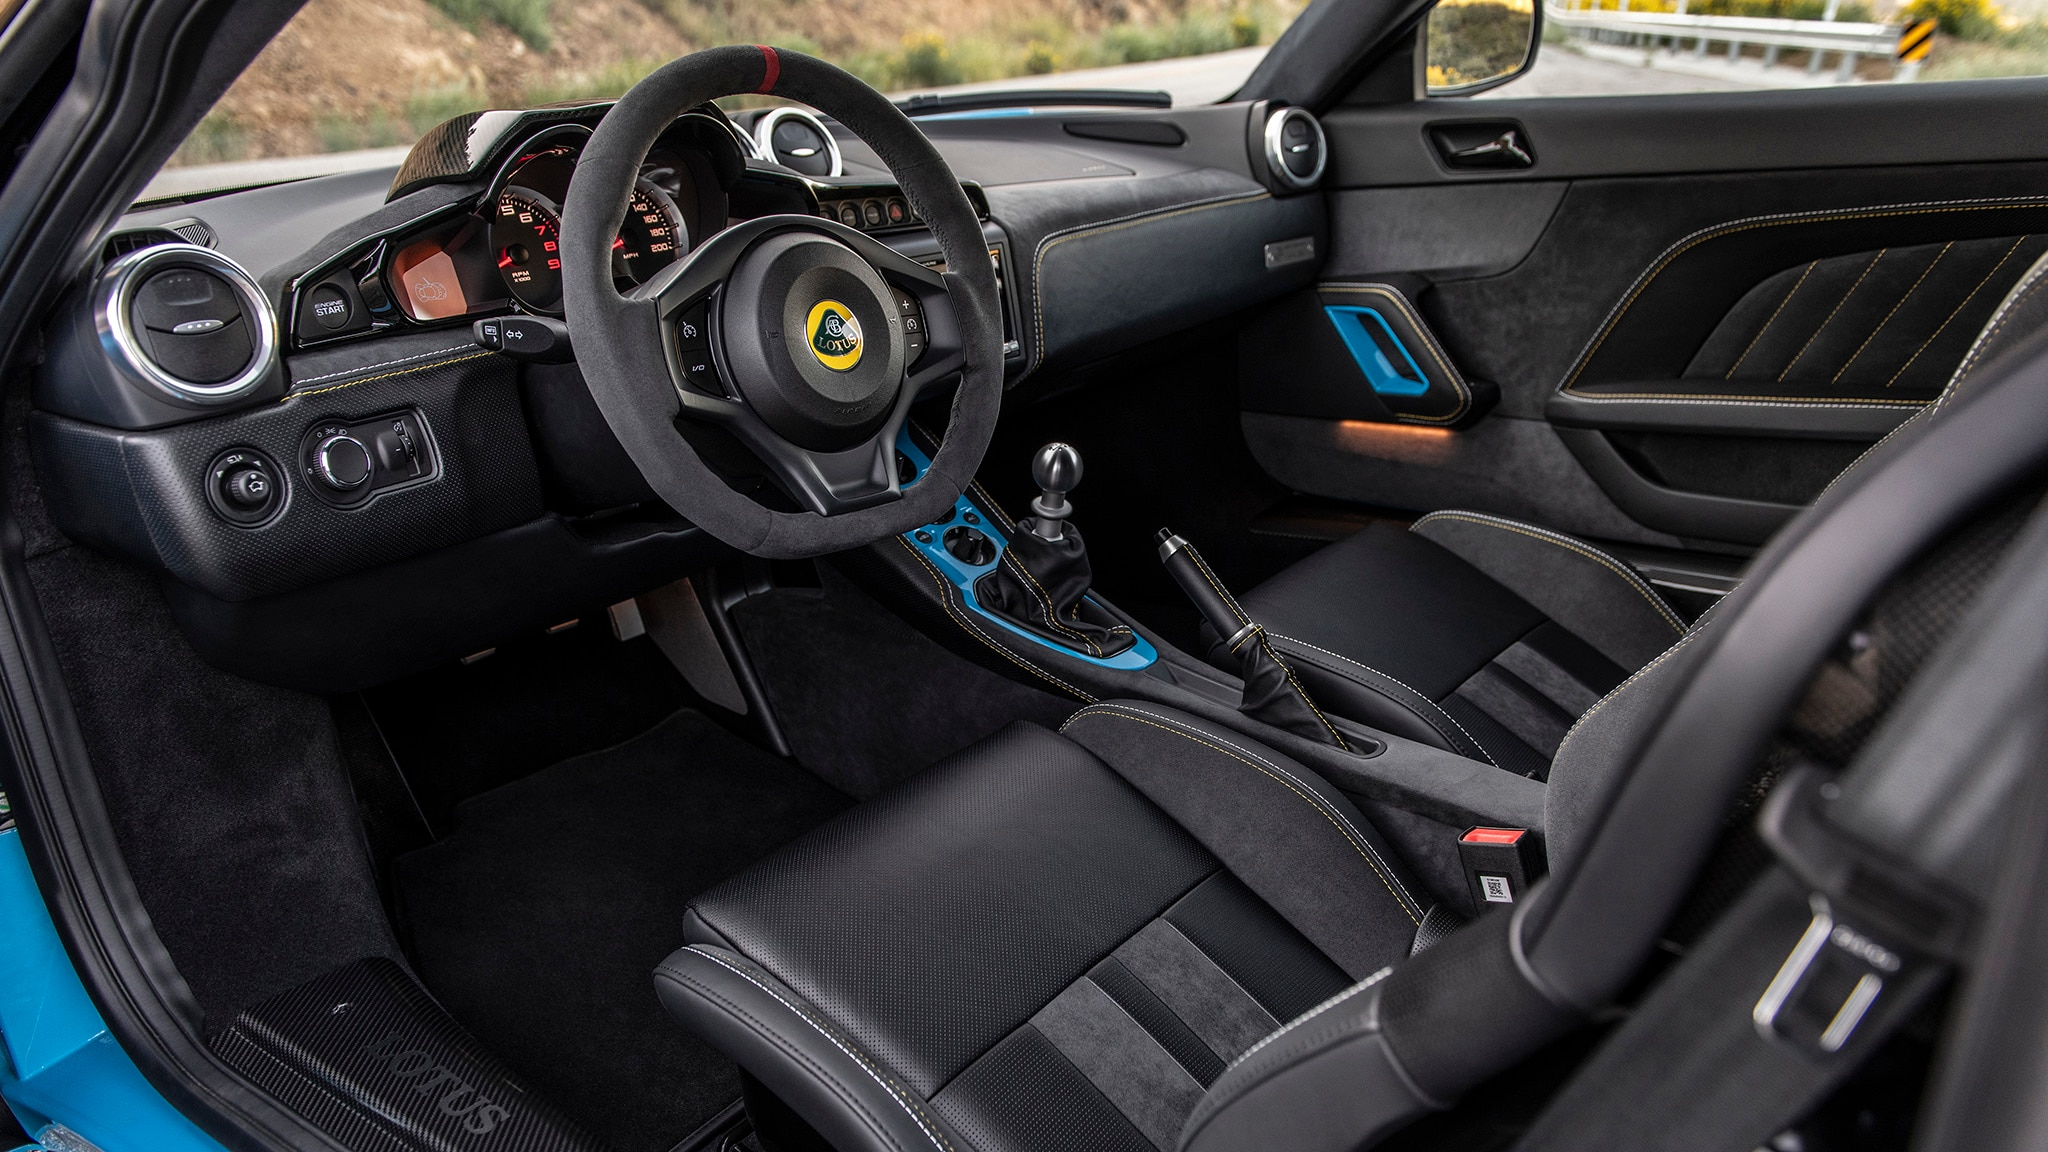 2020 lotus evora gt first drive review analog goodness